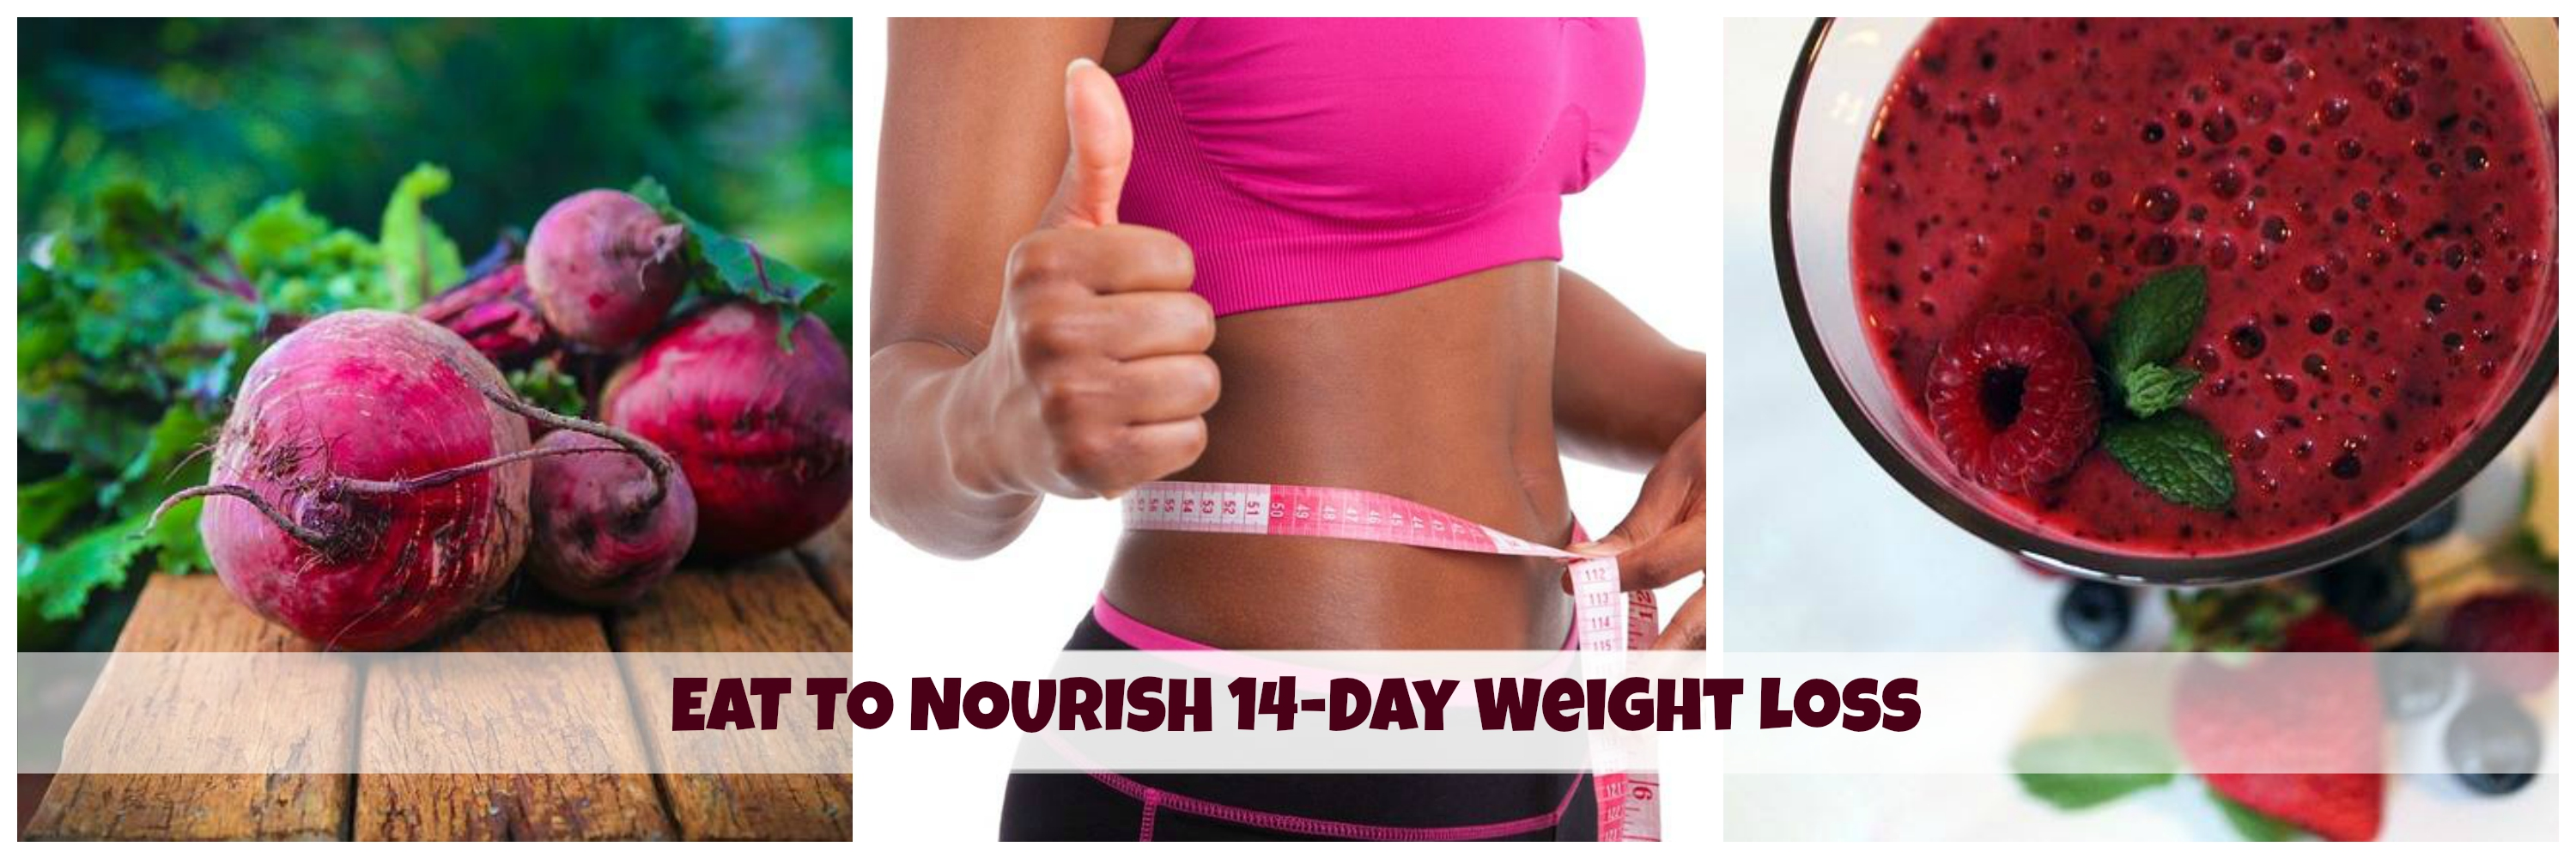 Eat to nourish weight loss banner